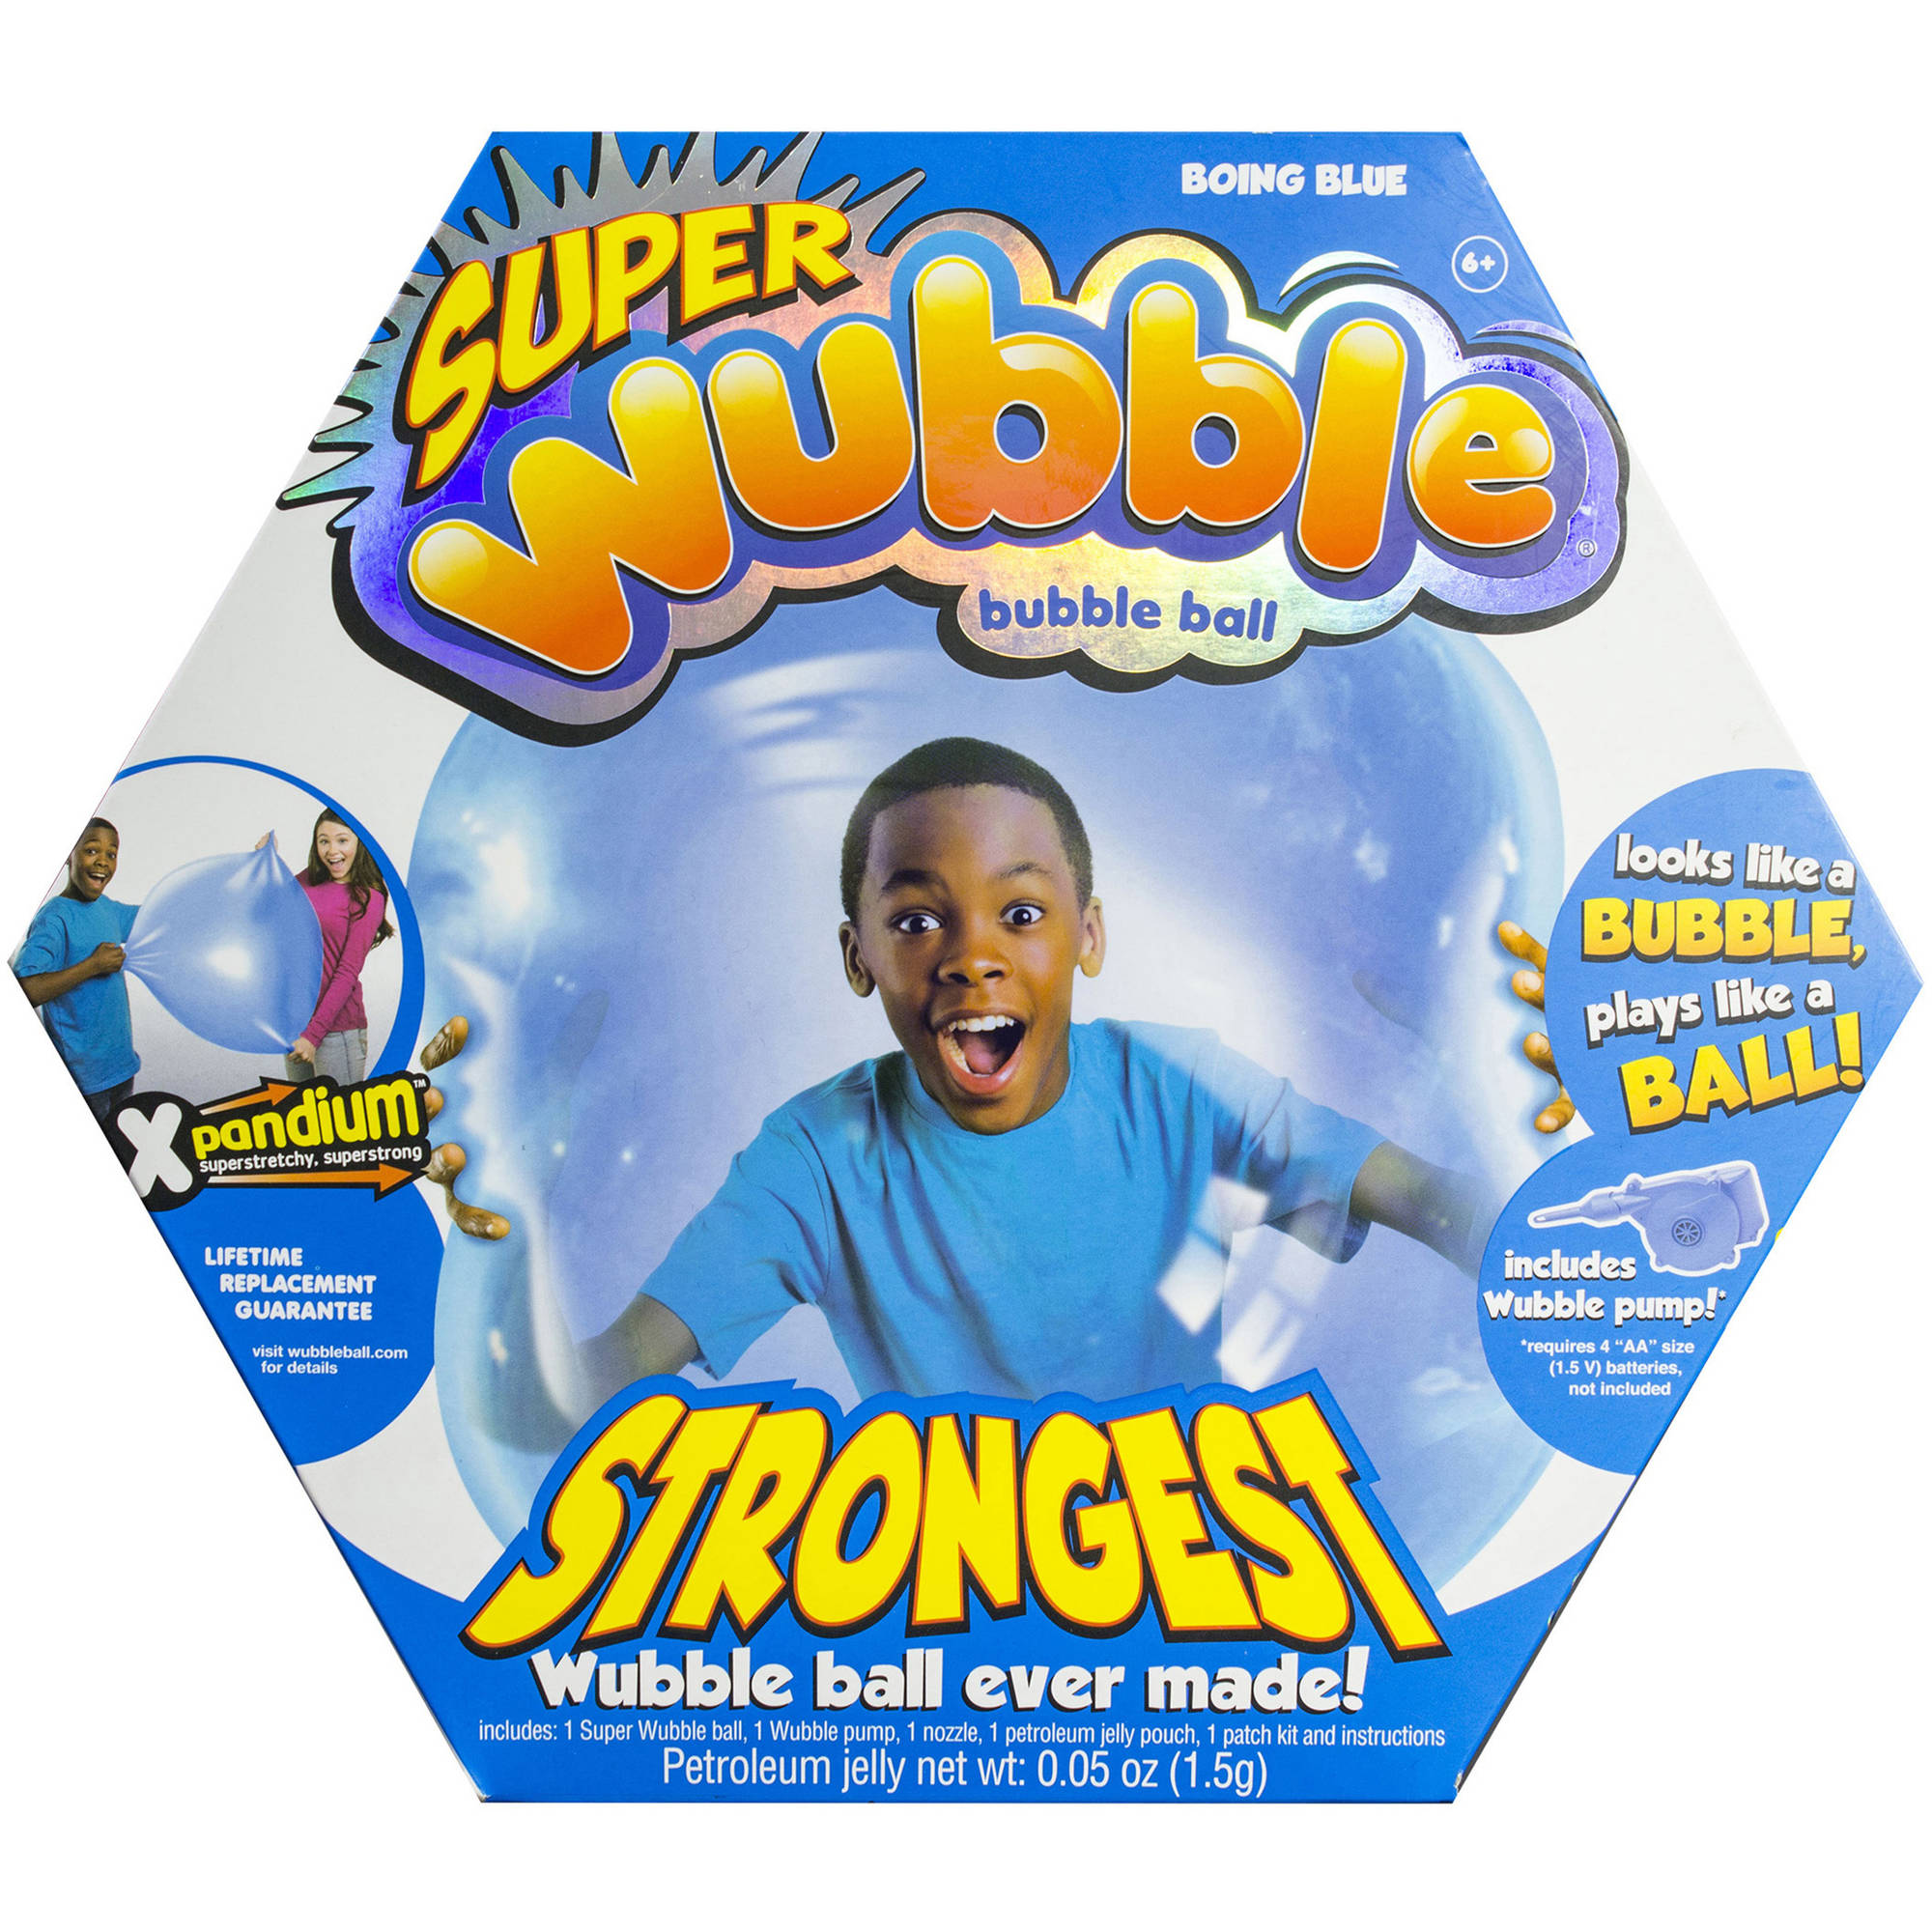 Super Wubble Bubble